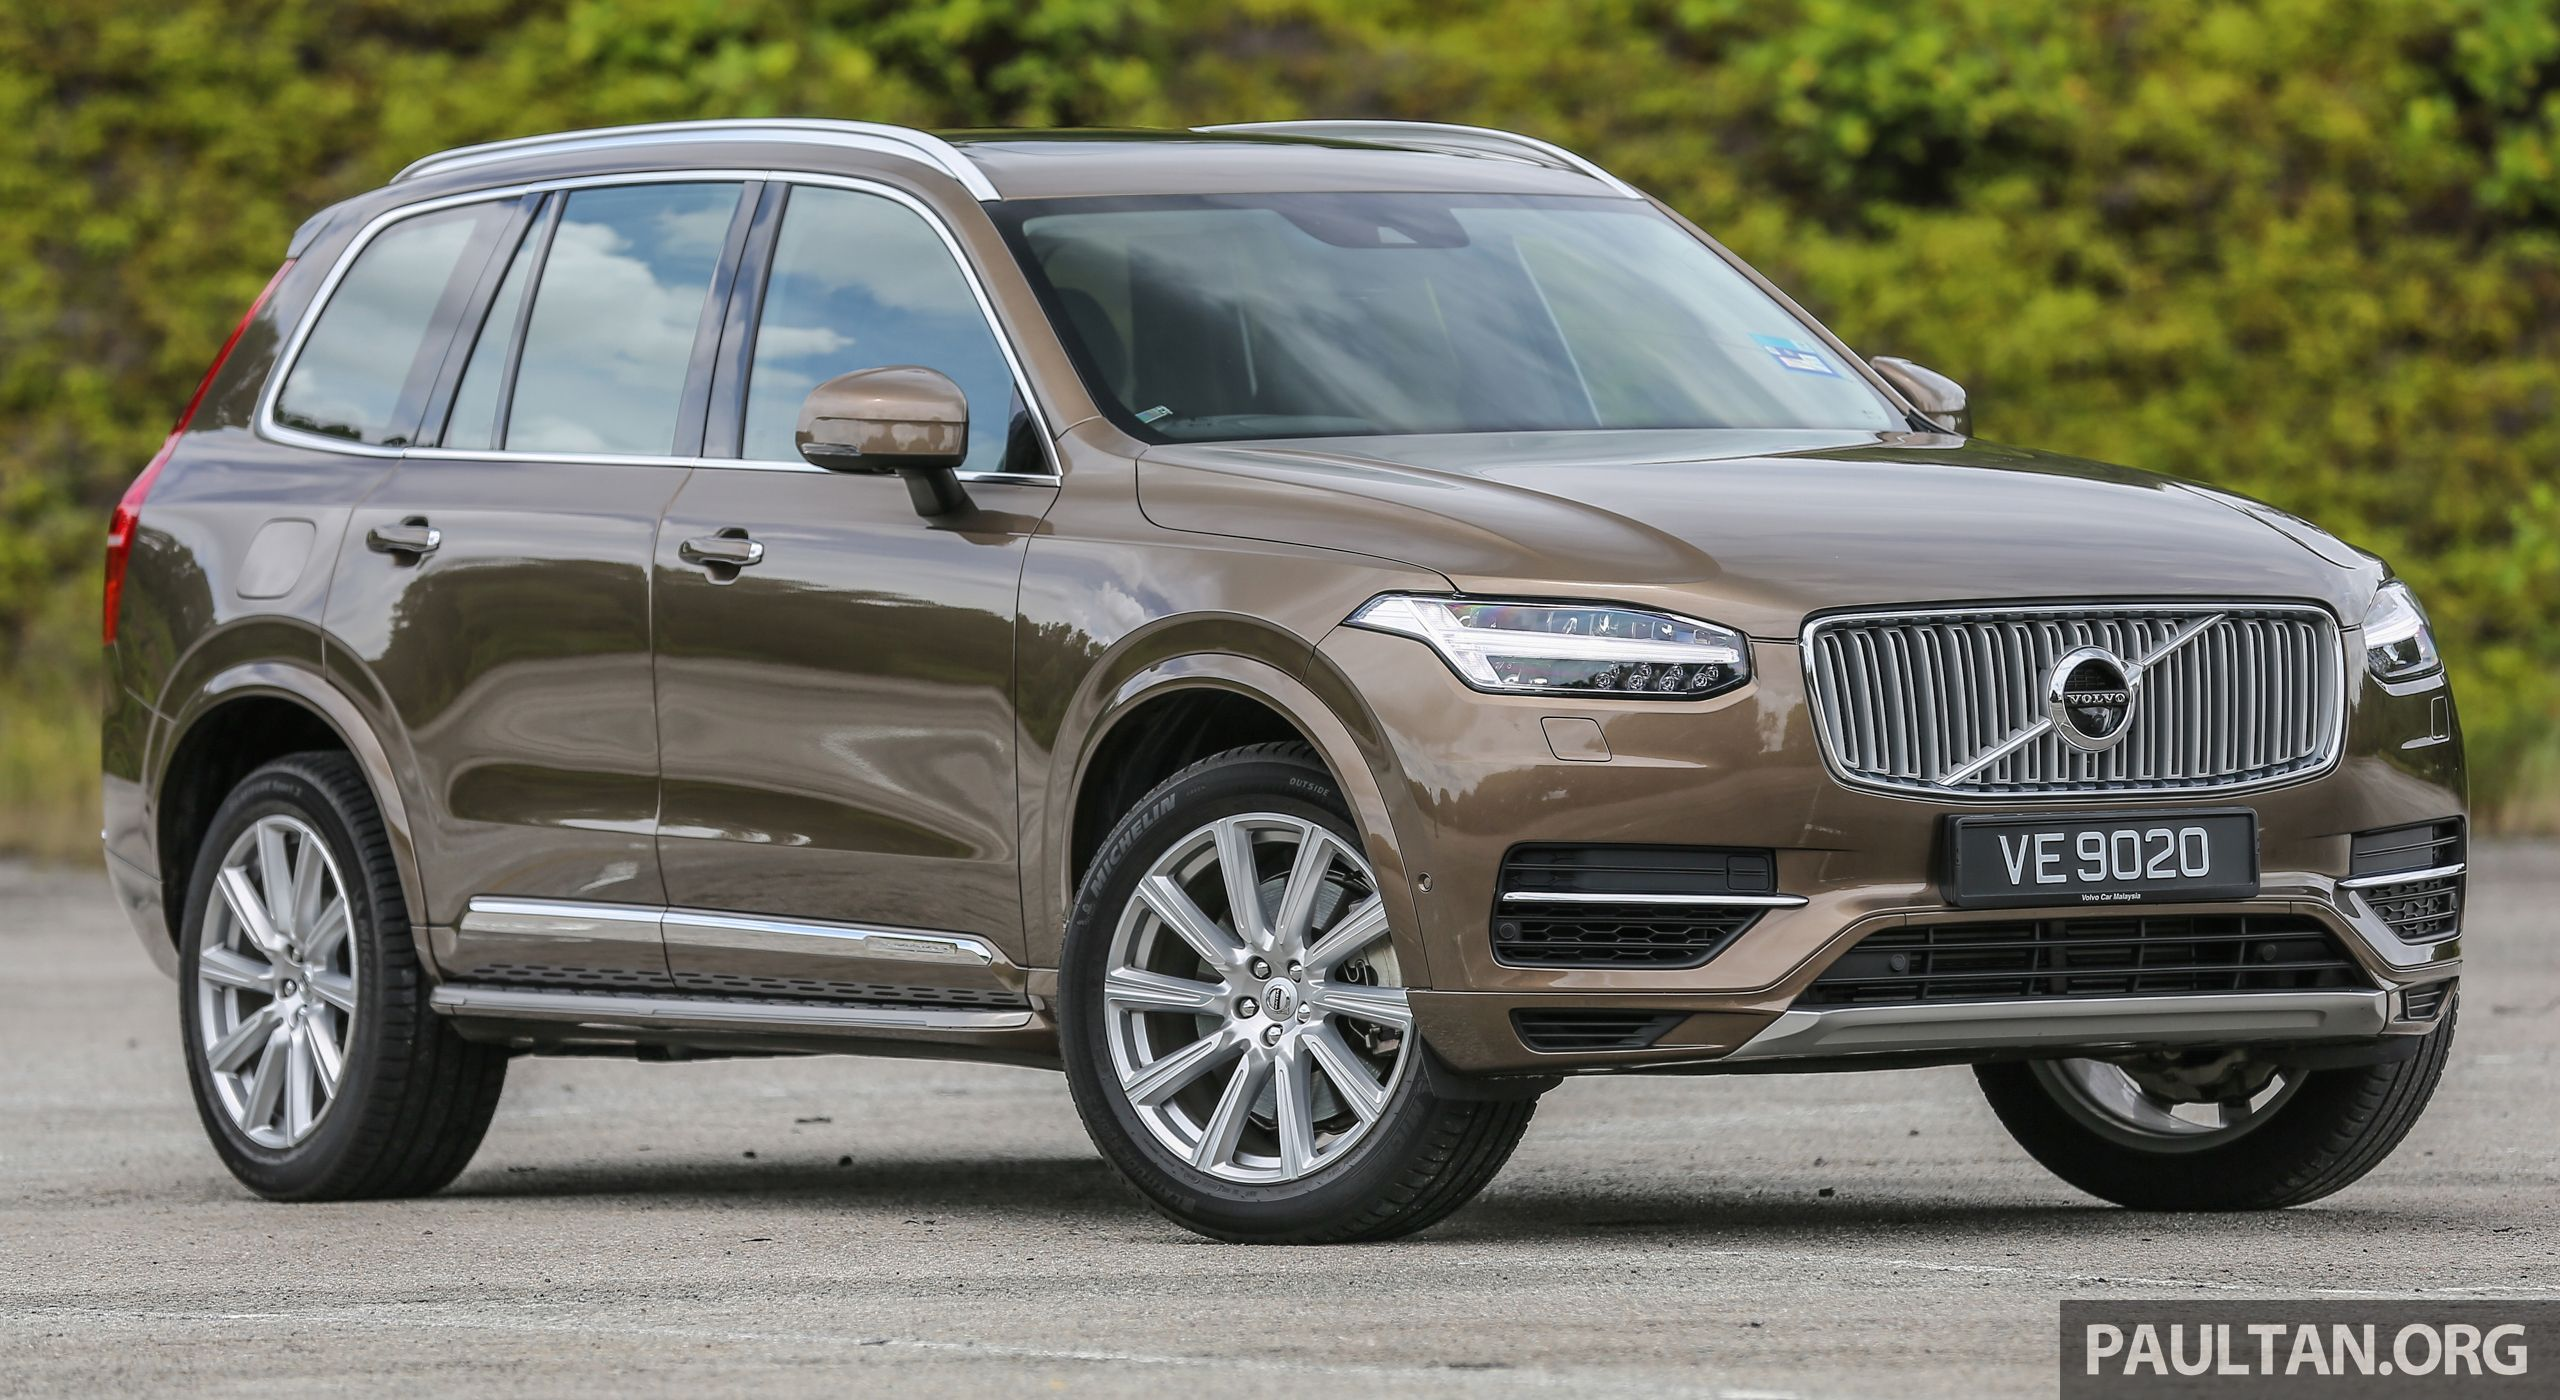 Volvo Xc90 T8 2021 Overview Volvo Xc90 Volvo Honda Cars For Sale